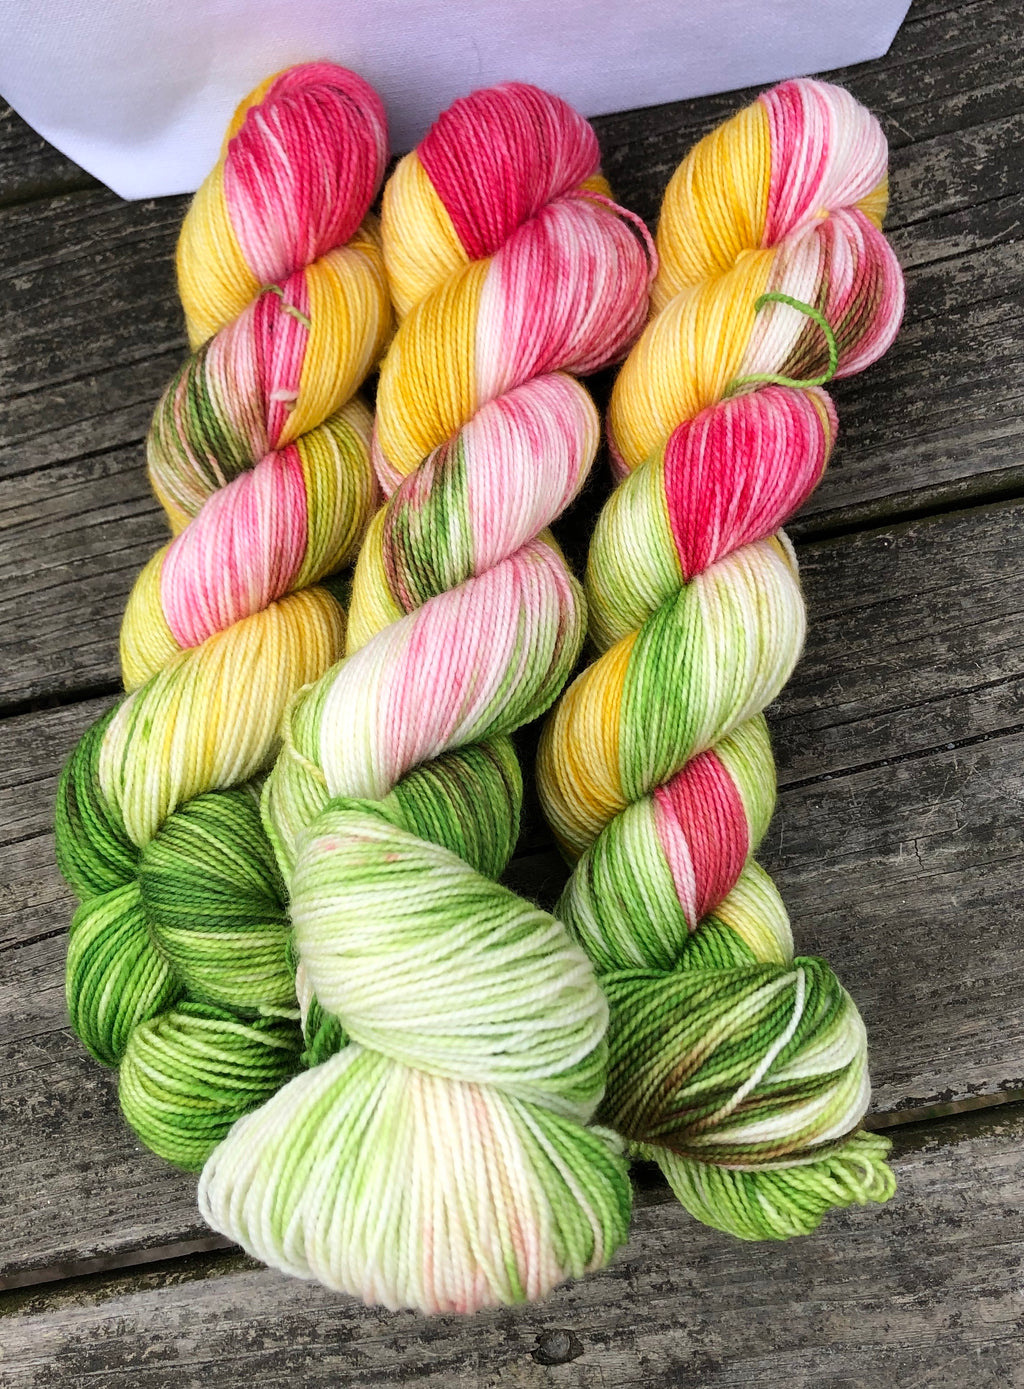 HOPE SPRINGS - Maryland 2020 Color, Toad Hollow Yarns